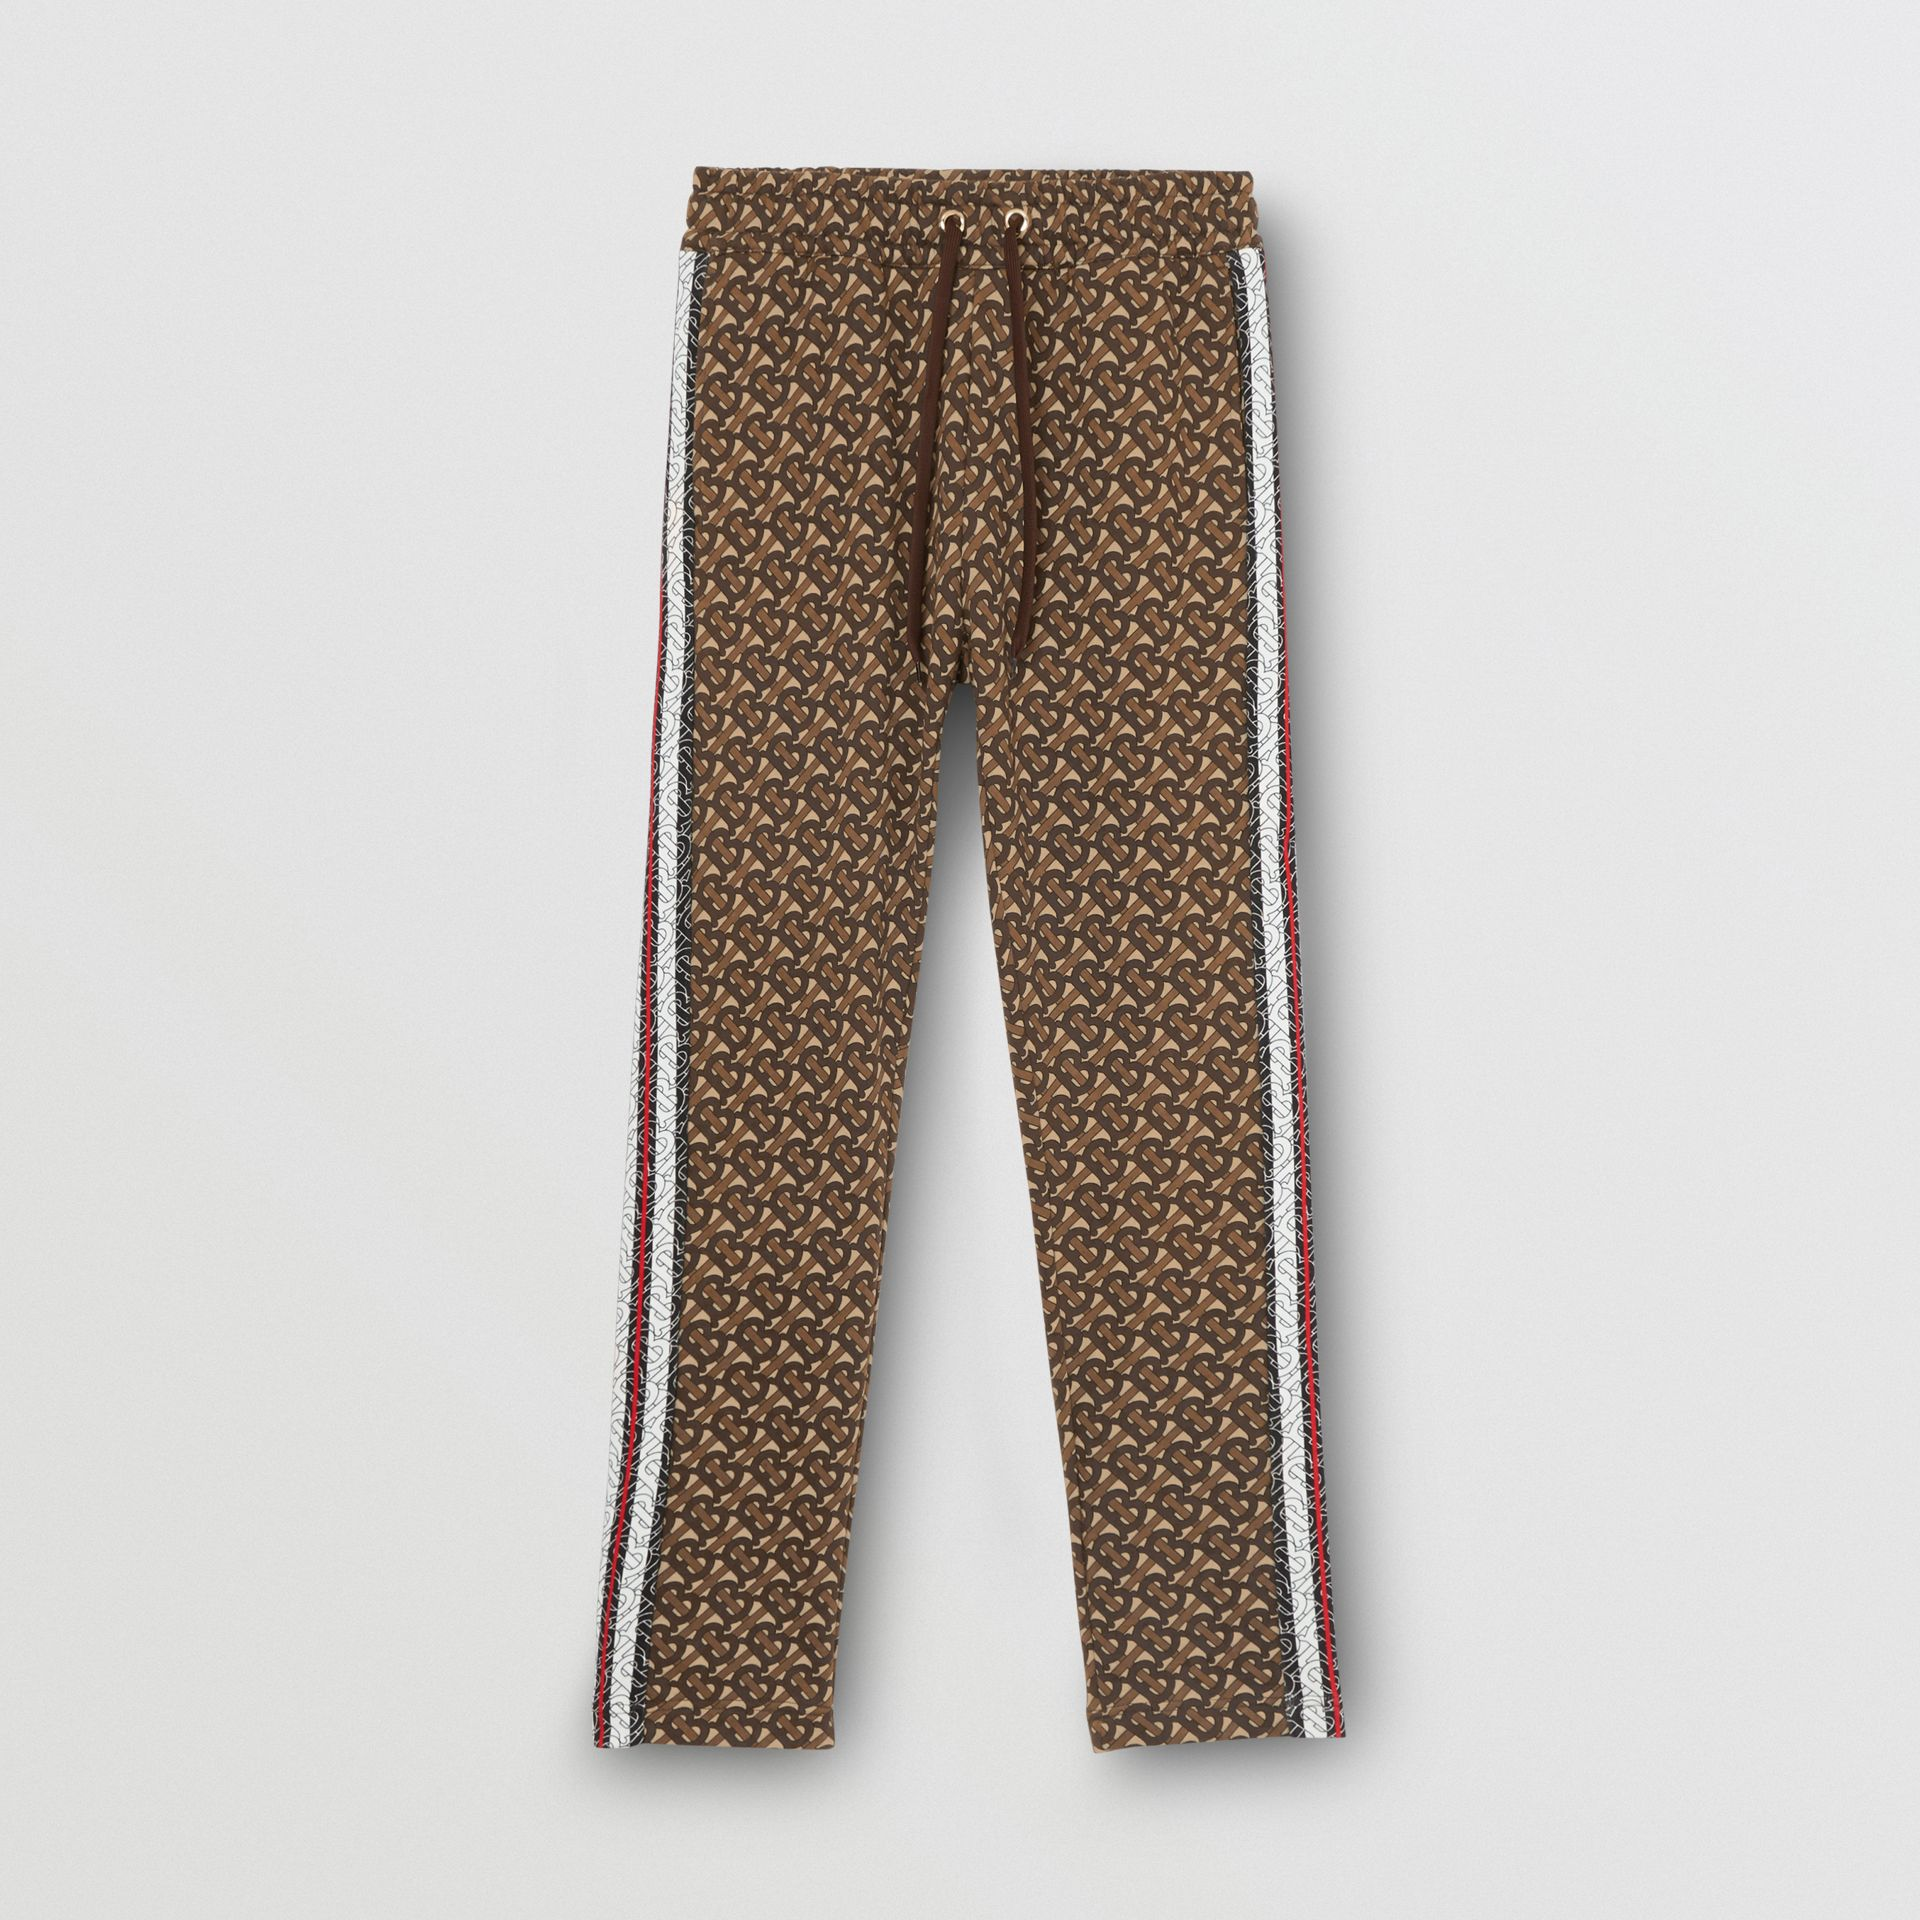 Monogram Stripe Print Cotton Trackpants in Bridle Brown - Women | Burberry Canada - gallery image 2